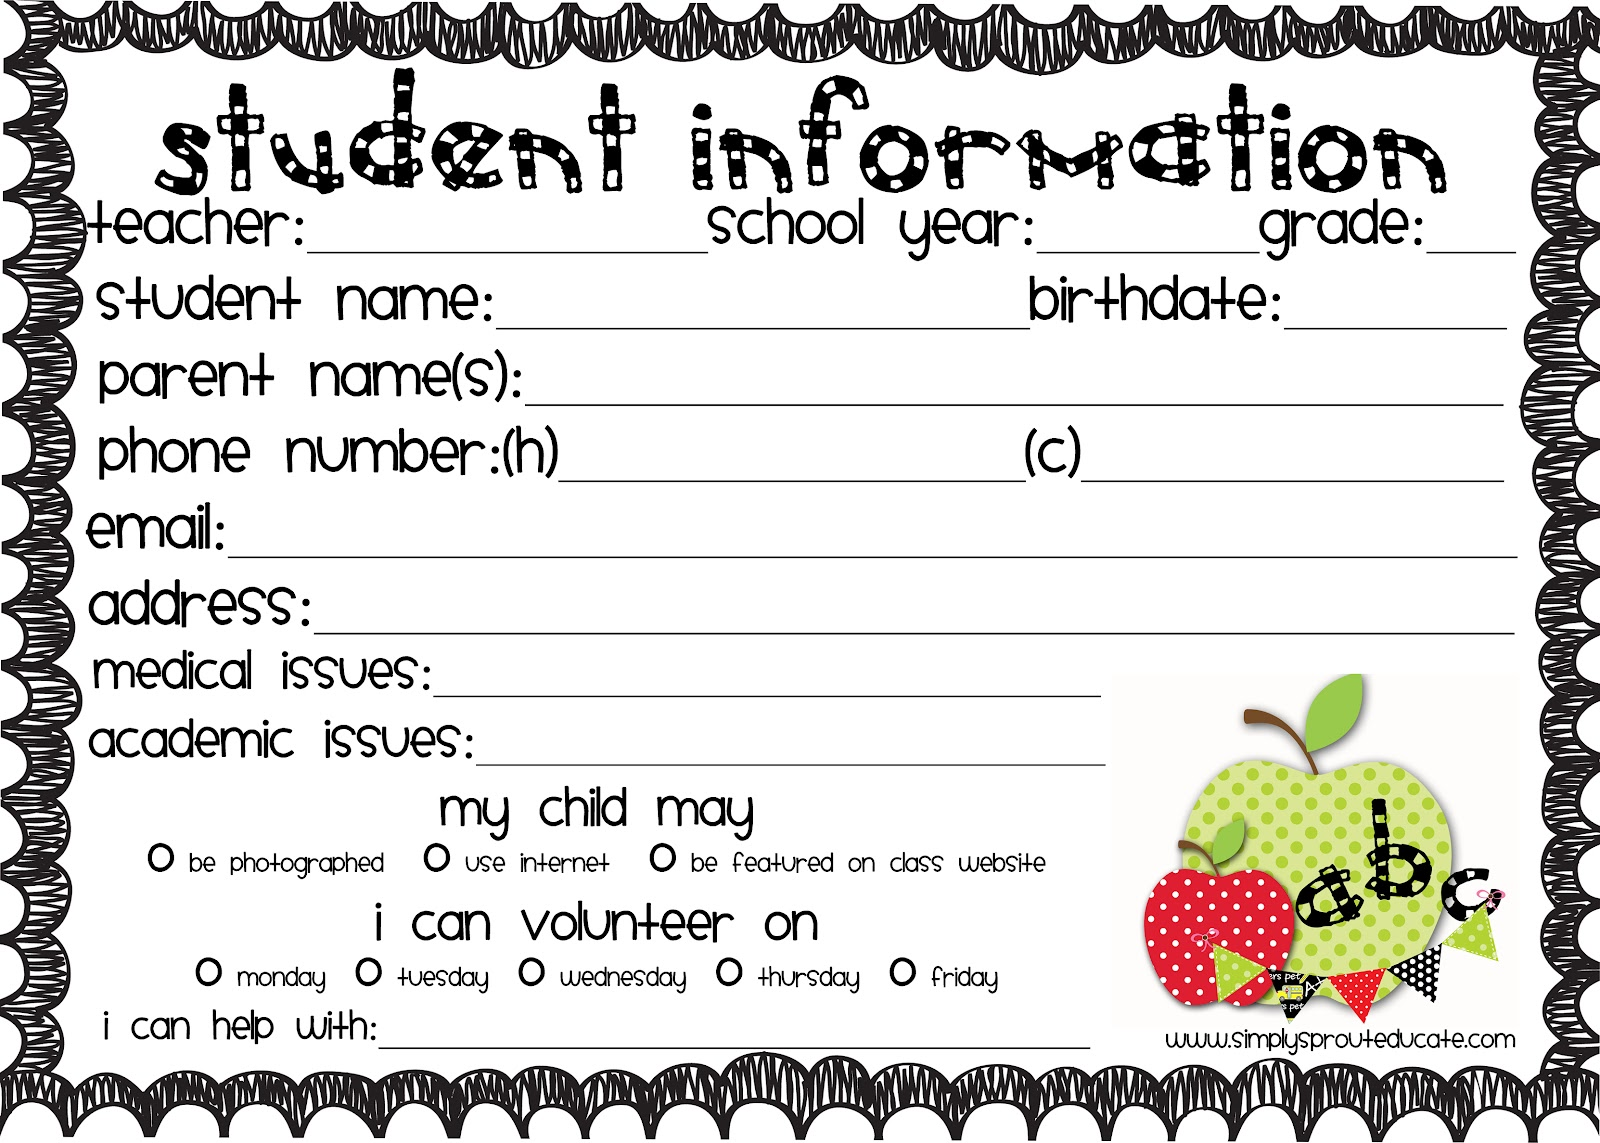 ... Printable together with Event Sign Up Sheet Template. on parent sign